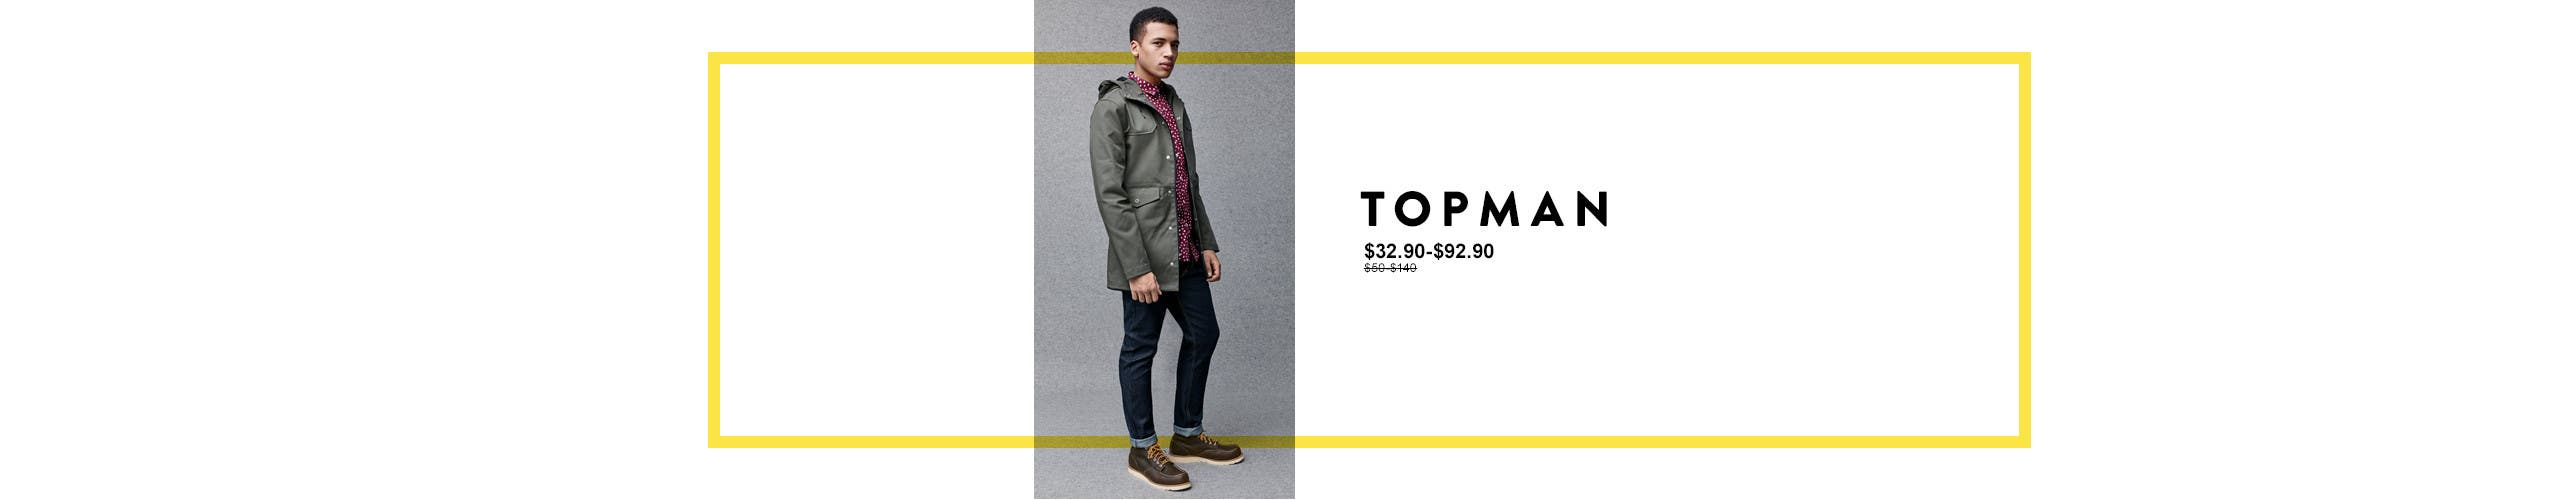 Anniversary Sale: Save on clothing for men from Topman.